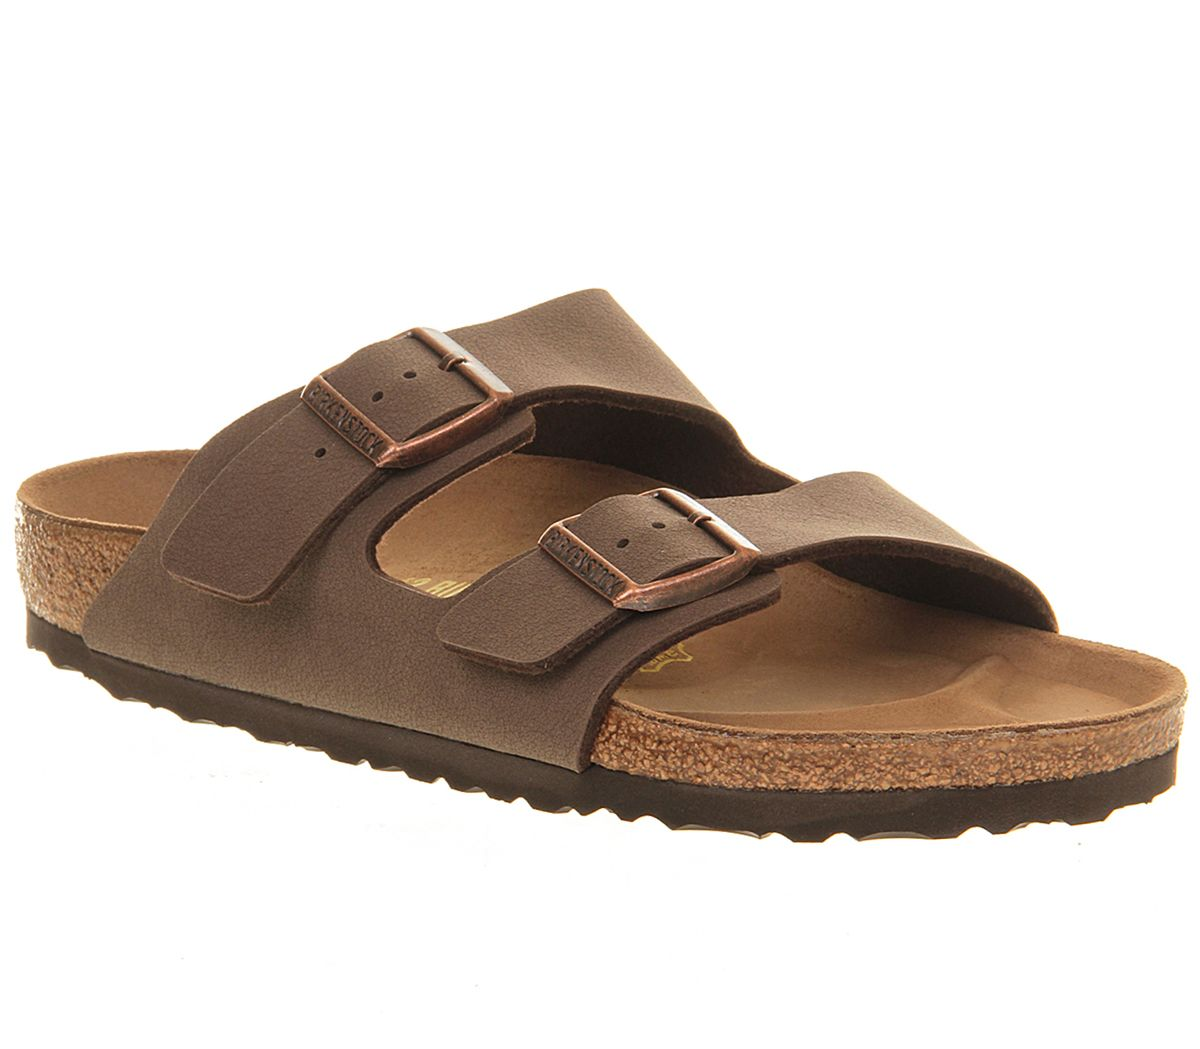 7c39cf44f Birkenstock Arizona Two Strap Sandals Mocca - Sandals